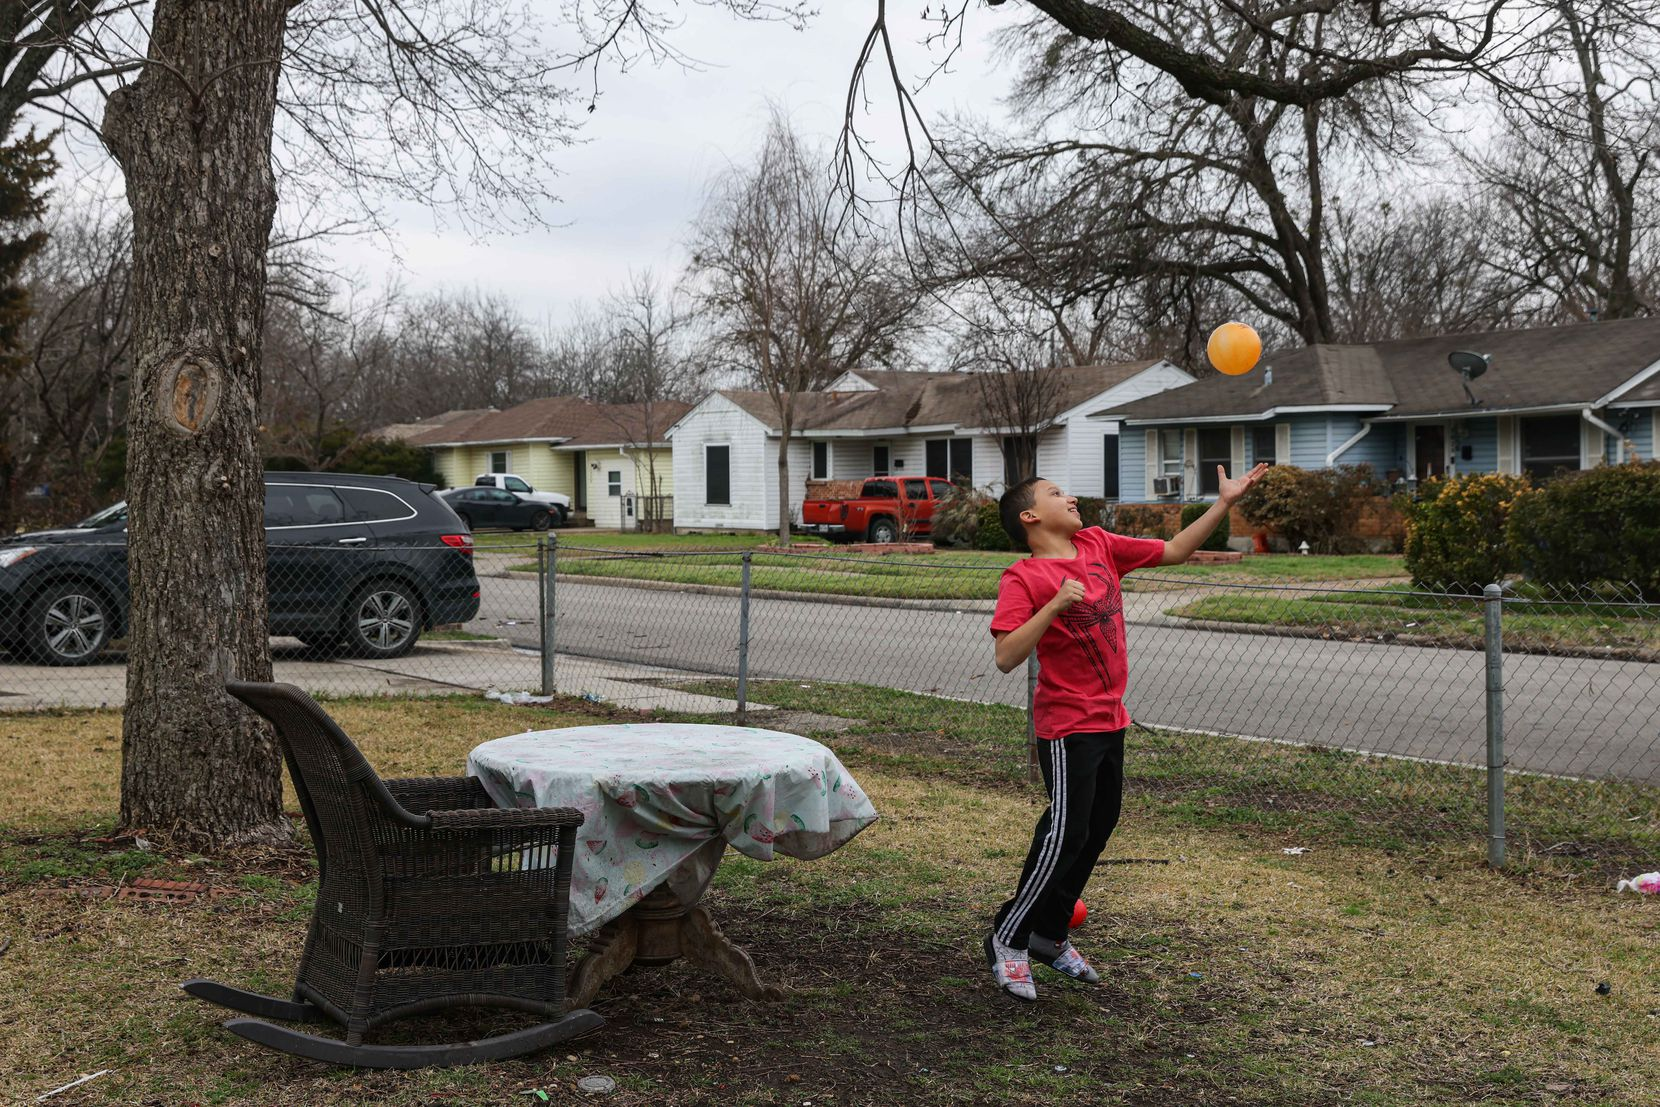 Aaron Hall, 11, who is on the autism spectrum, plays with a plastic ball at his front yard in Dallas on Friday, February 26, 2021. About a week ago, his home lost power for days, bringing the temperature to around 40 degrees Fahrenheit inside after the winter storm hit Texas.